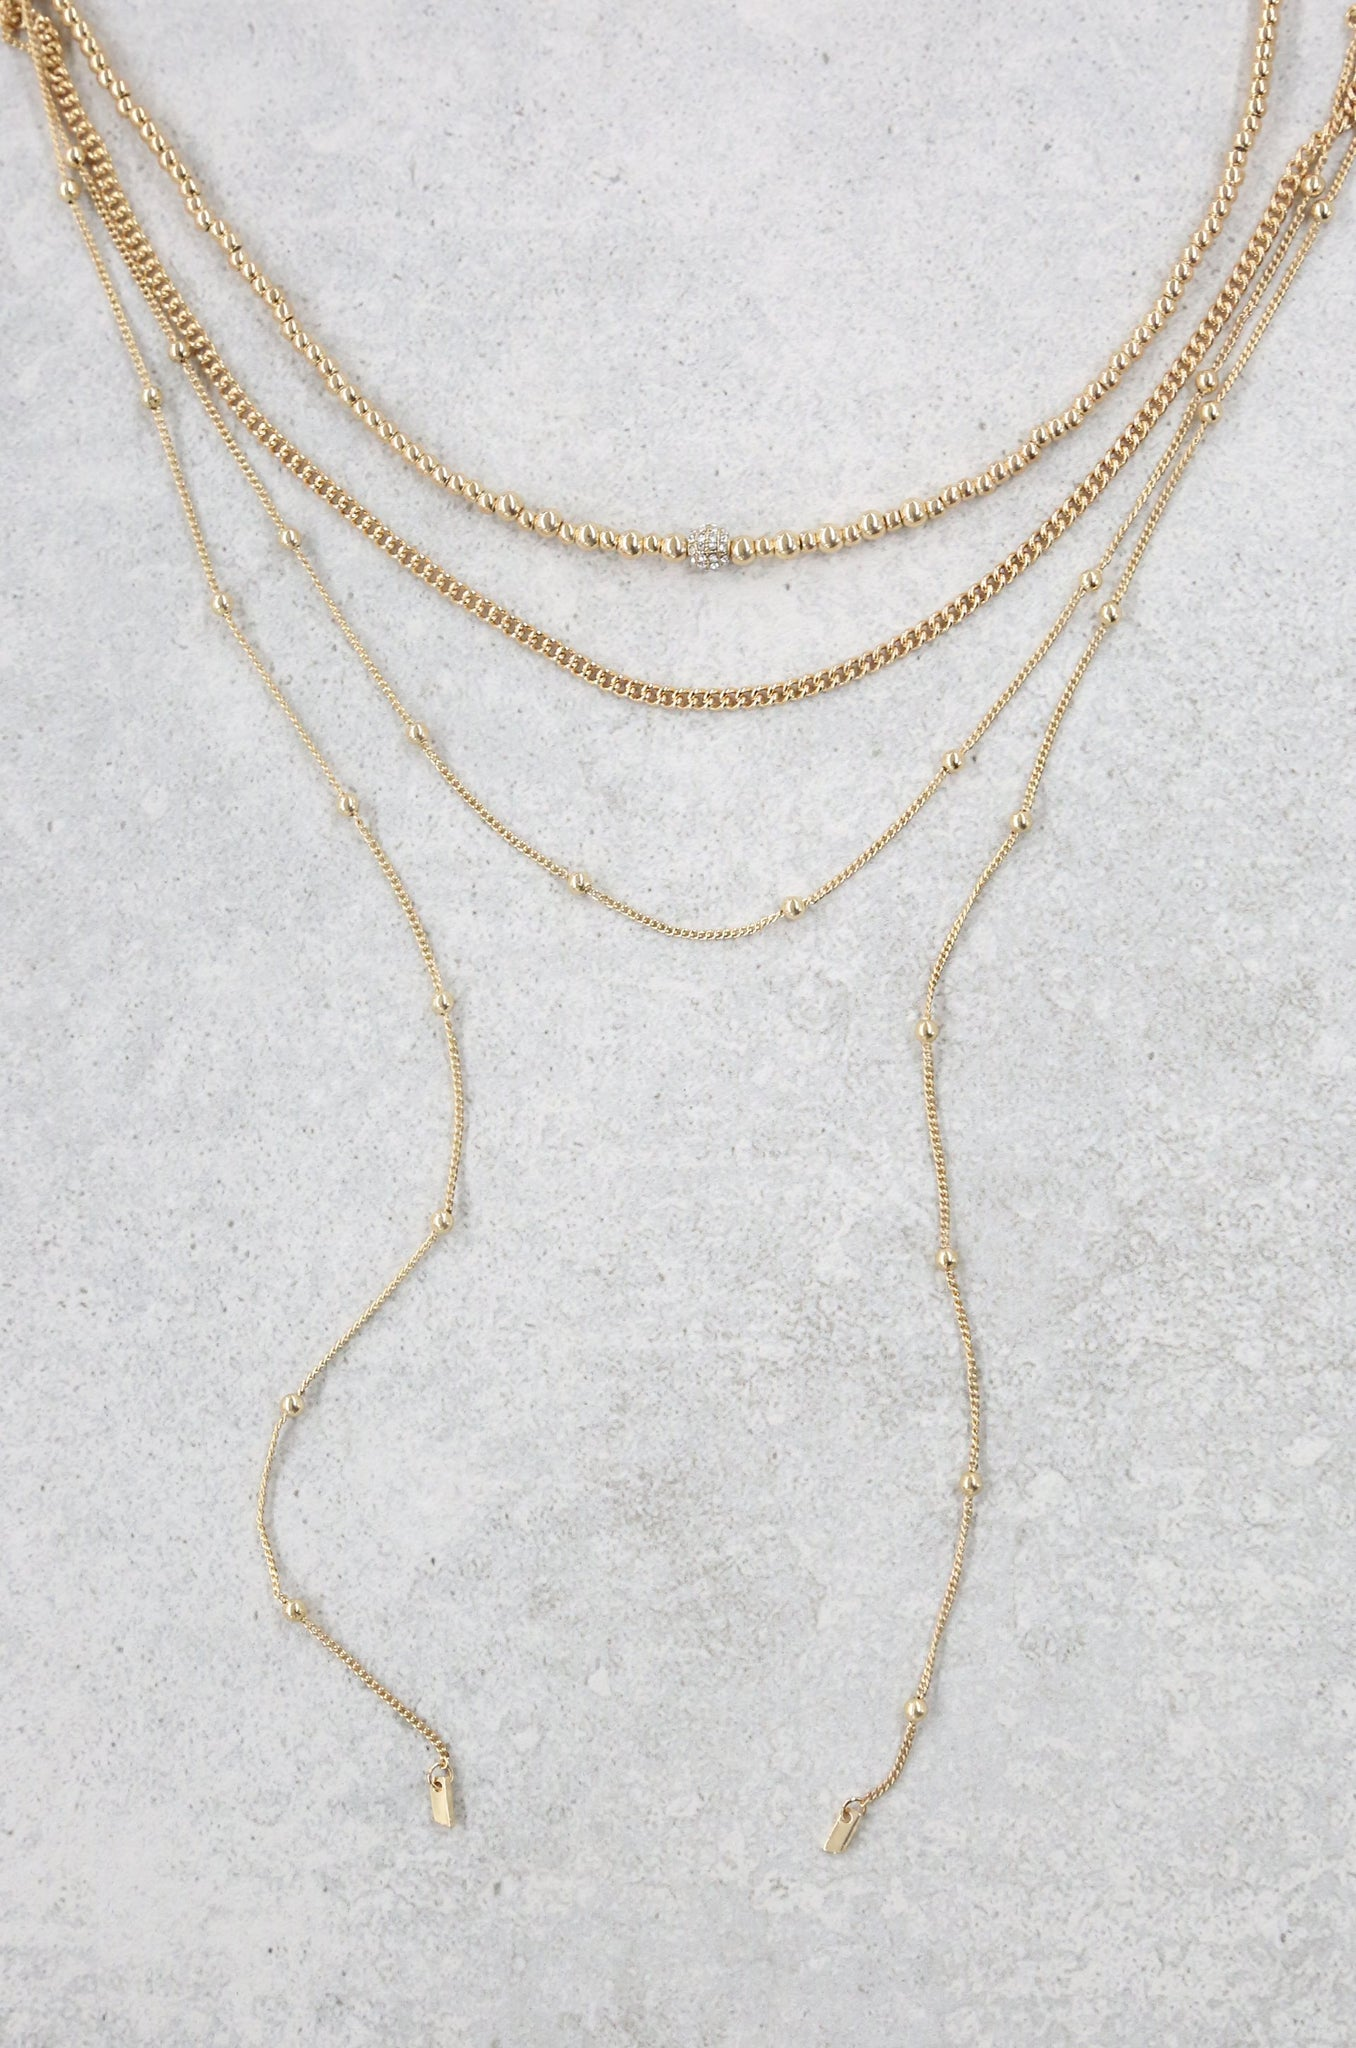 Sophisticated Strands Necklace Set